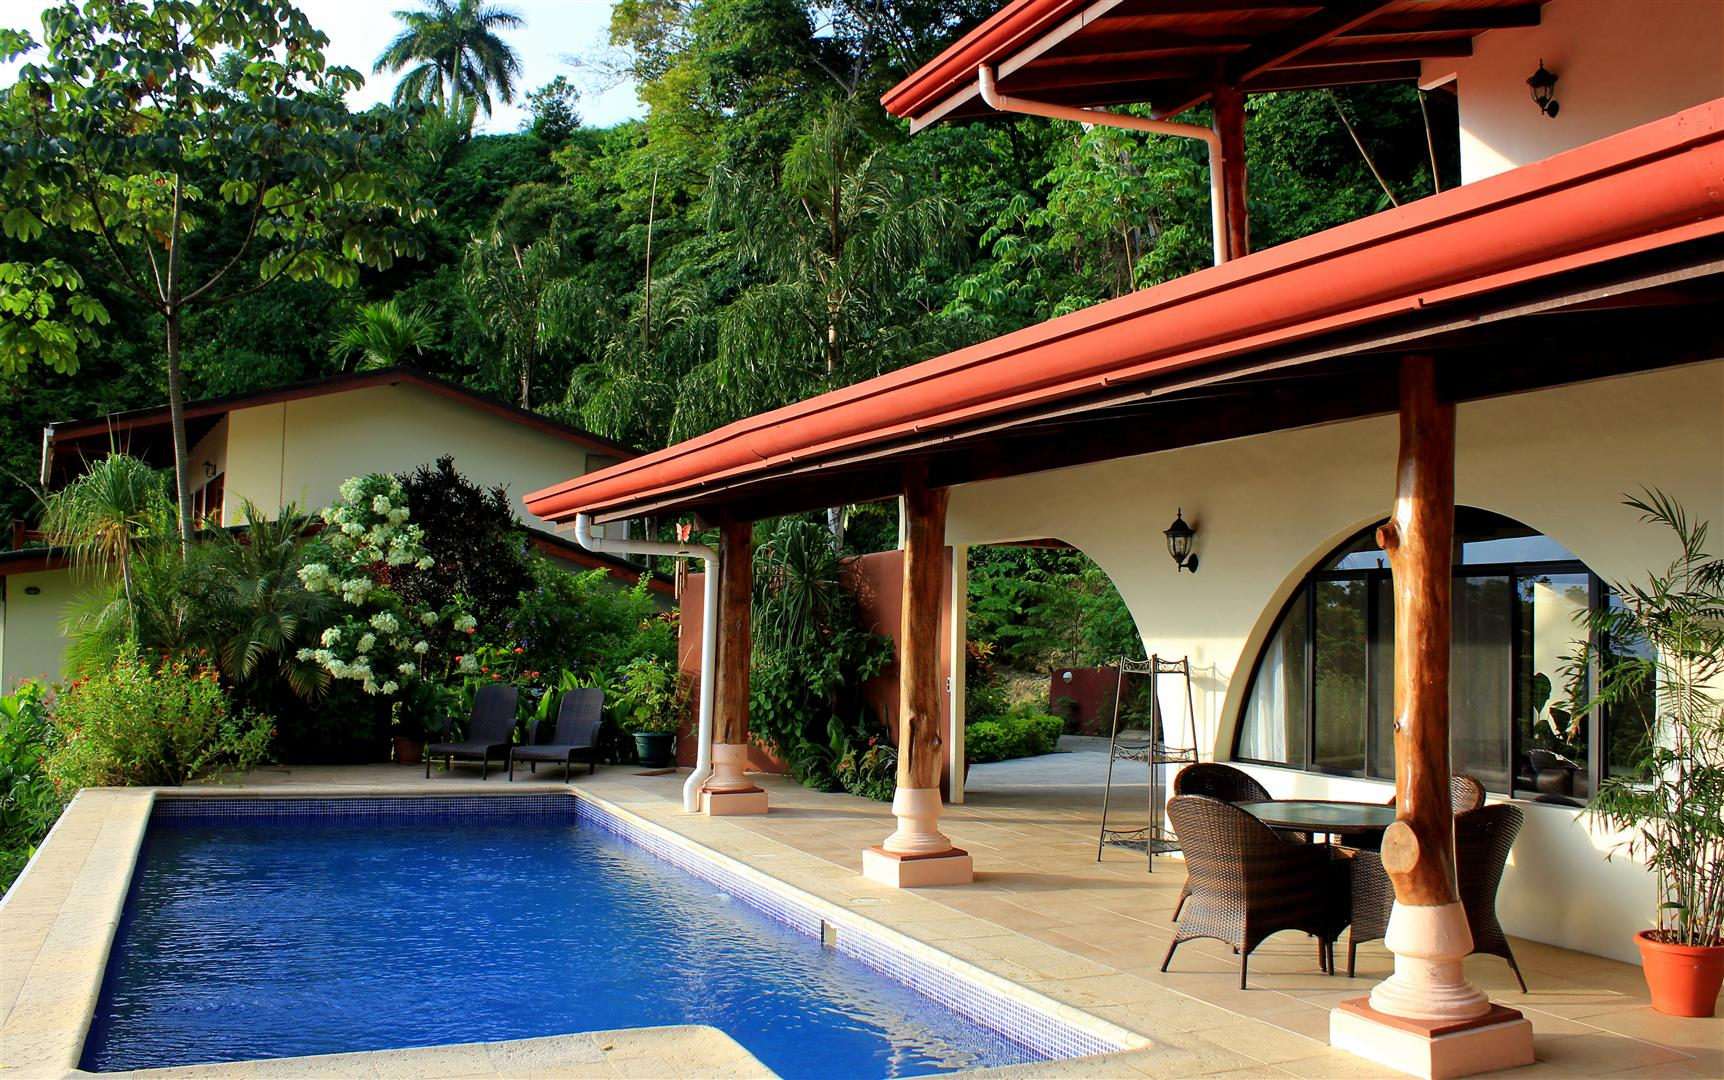 Outdoor pool and terrace at Casa Vida, Manuel Antonio